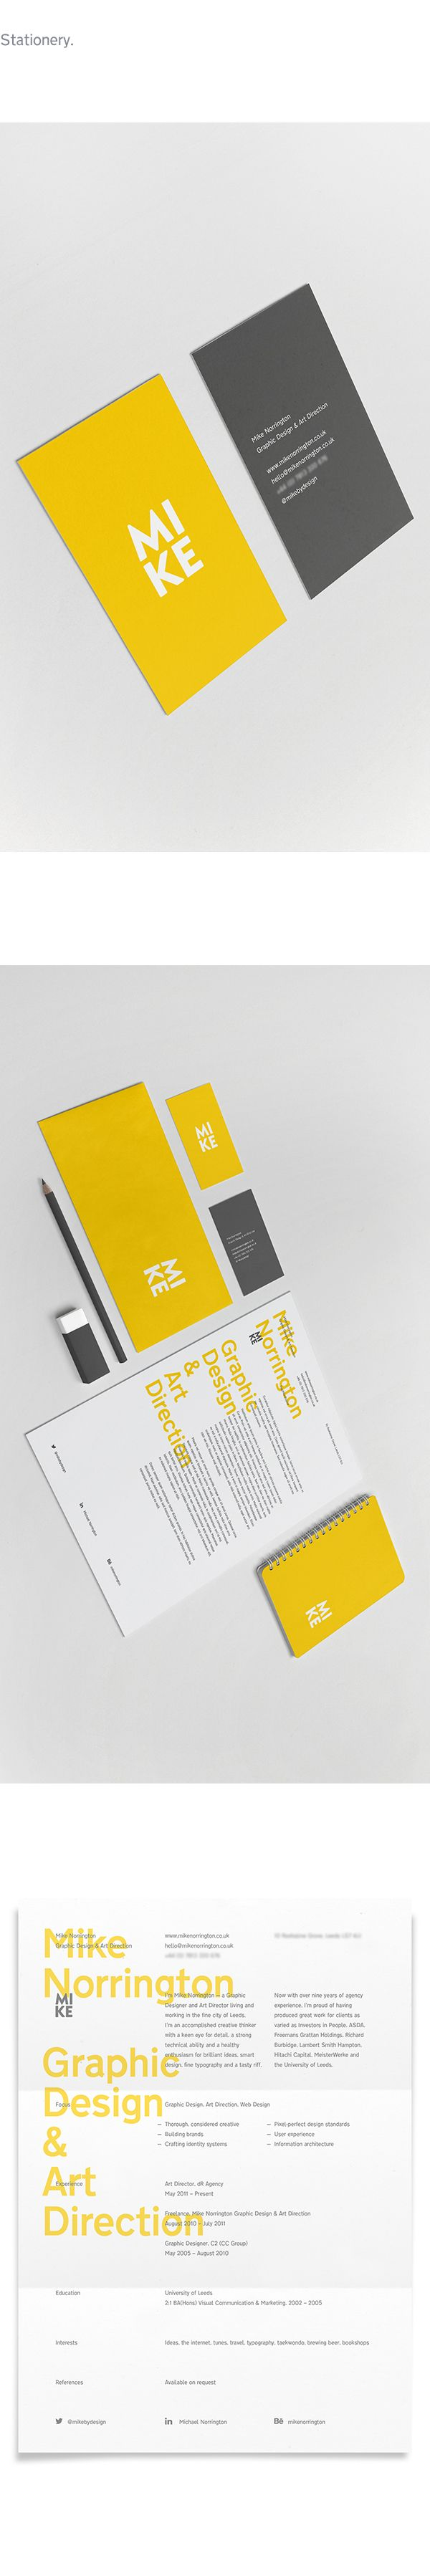 MIKE: a very personal identity by Mike Norrington, via Behance